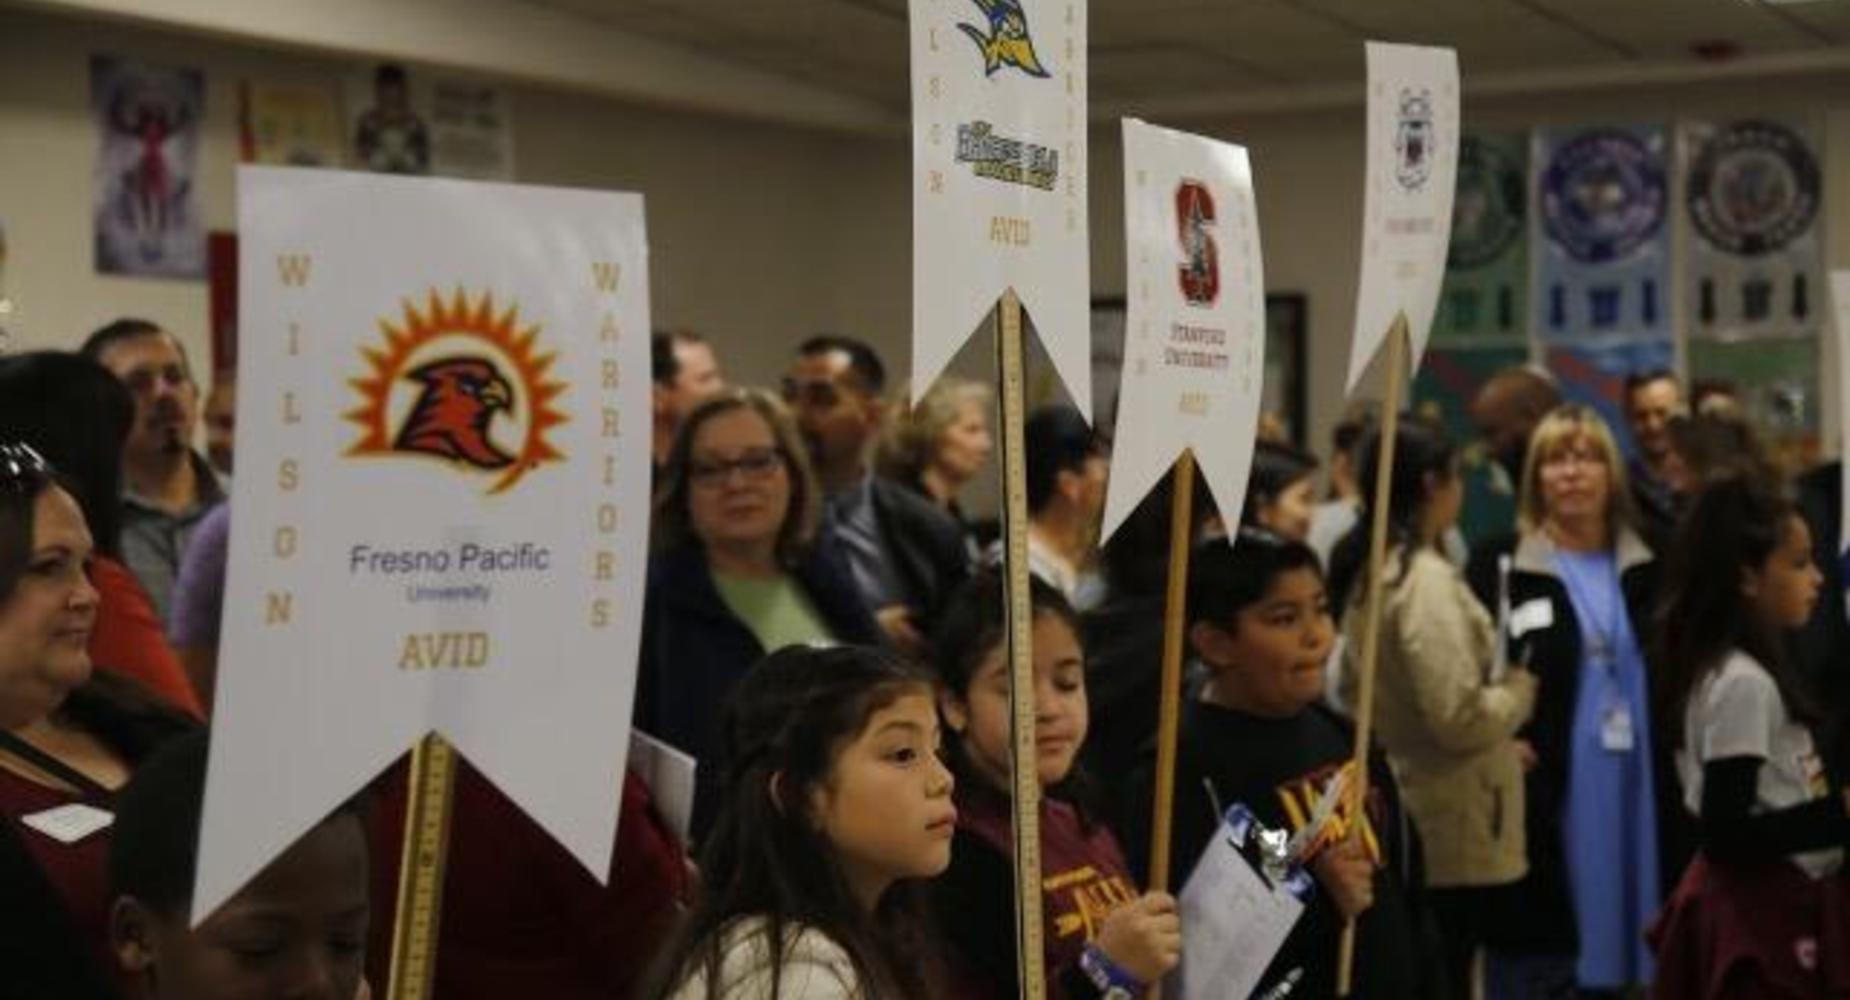 Students with college signs during AVID Showcase.